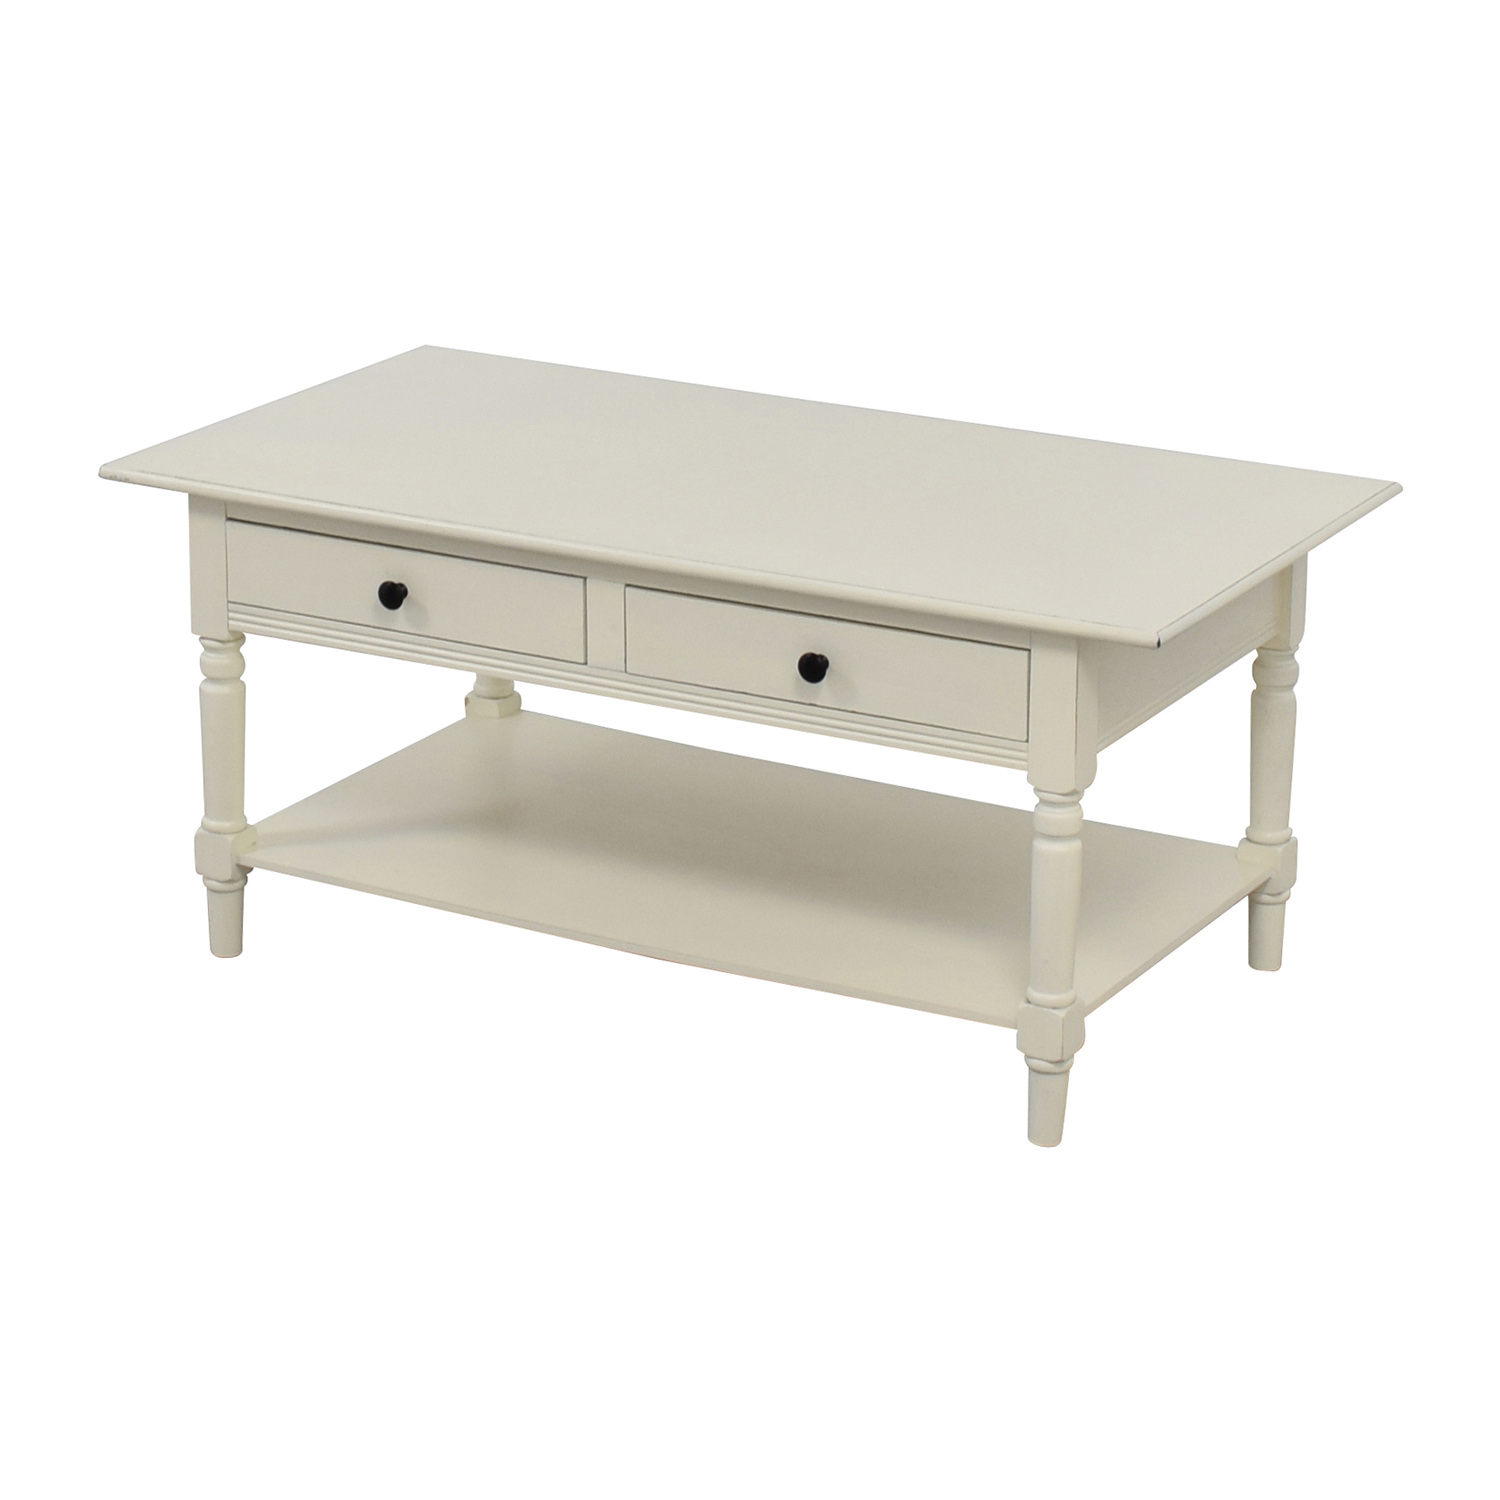 macys coffee tables 28 images silverado rectangular  : second hand macys white two drawer coffee table from www.inhomecarestlouis.com size 1500 x 1500 jpeg 195kB